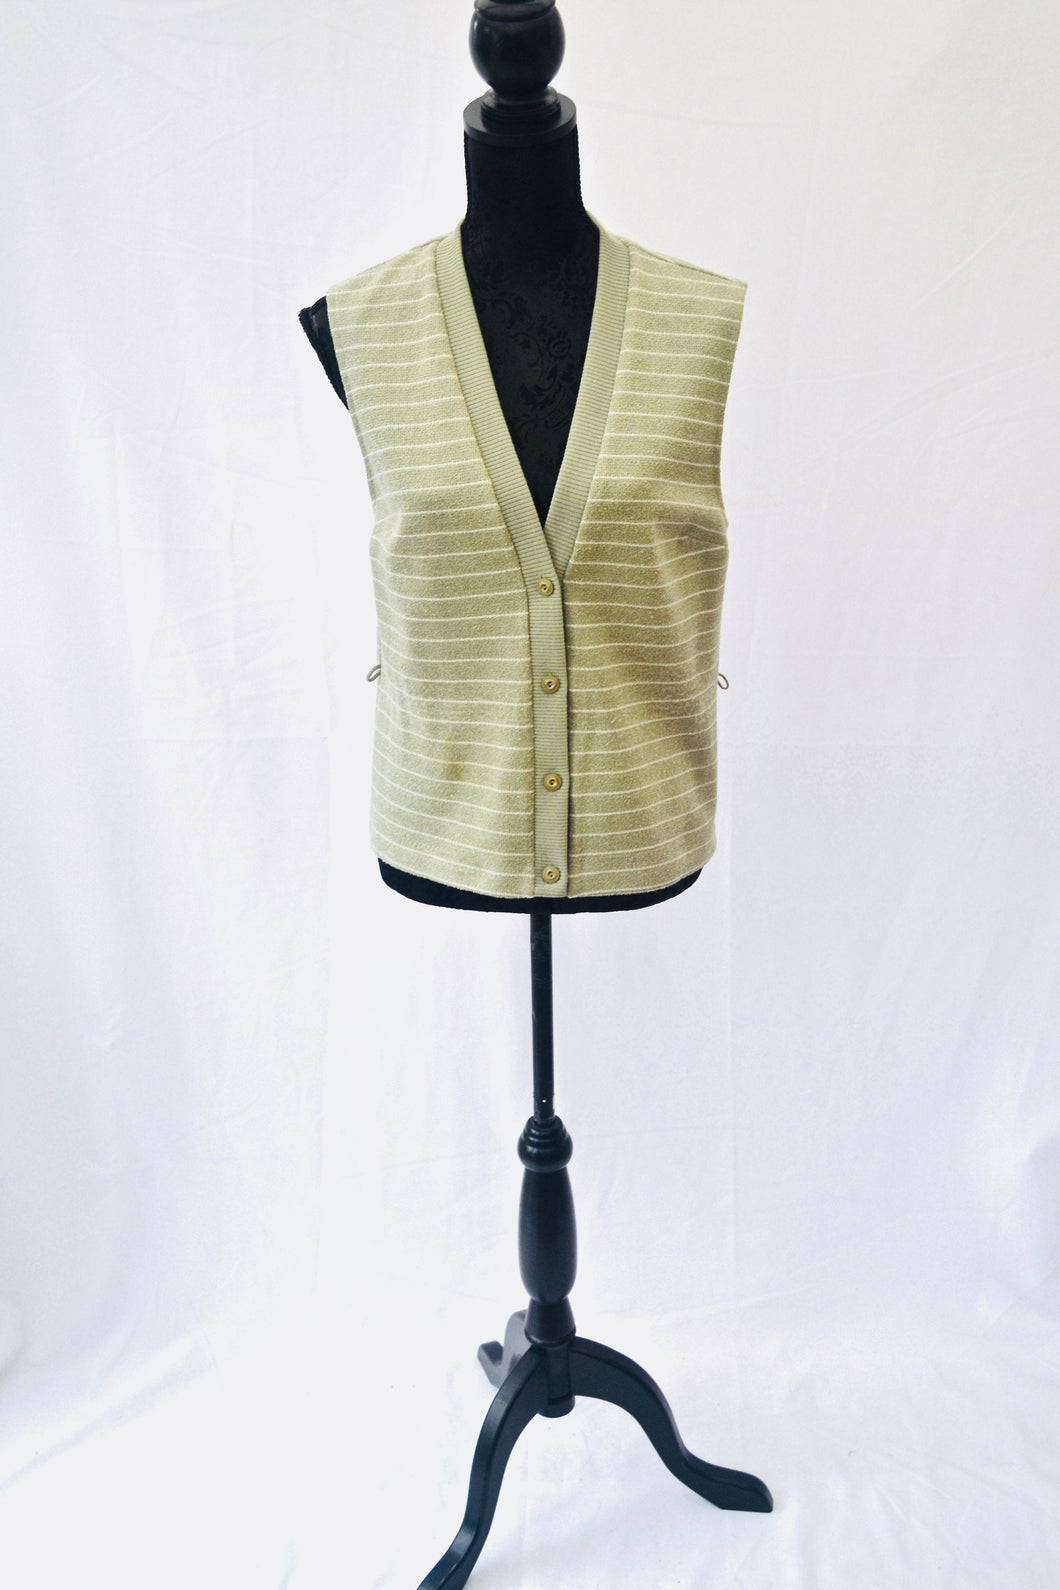 1980s Ladies tank top | Sleeveless cardi | Button up vest | Green and white stripes |  Est UK size 12